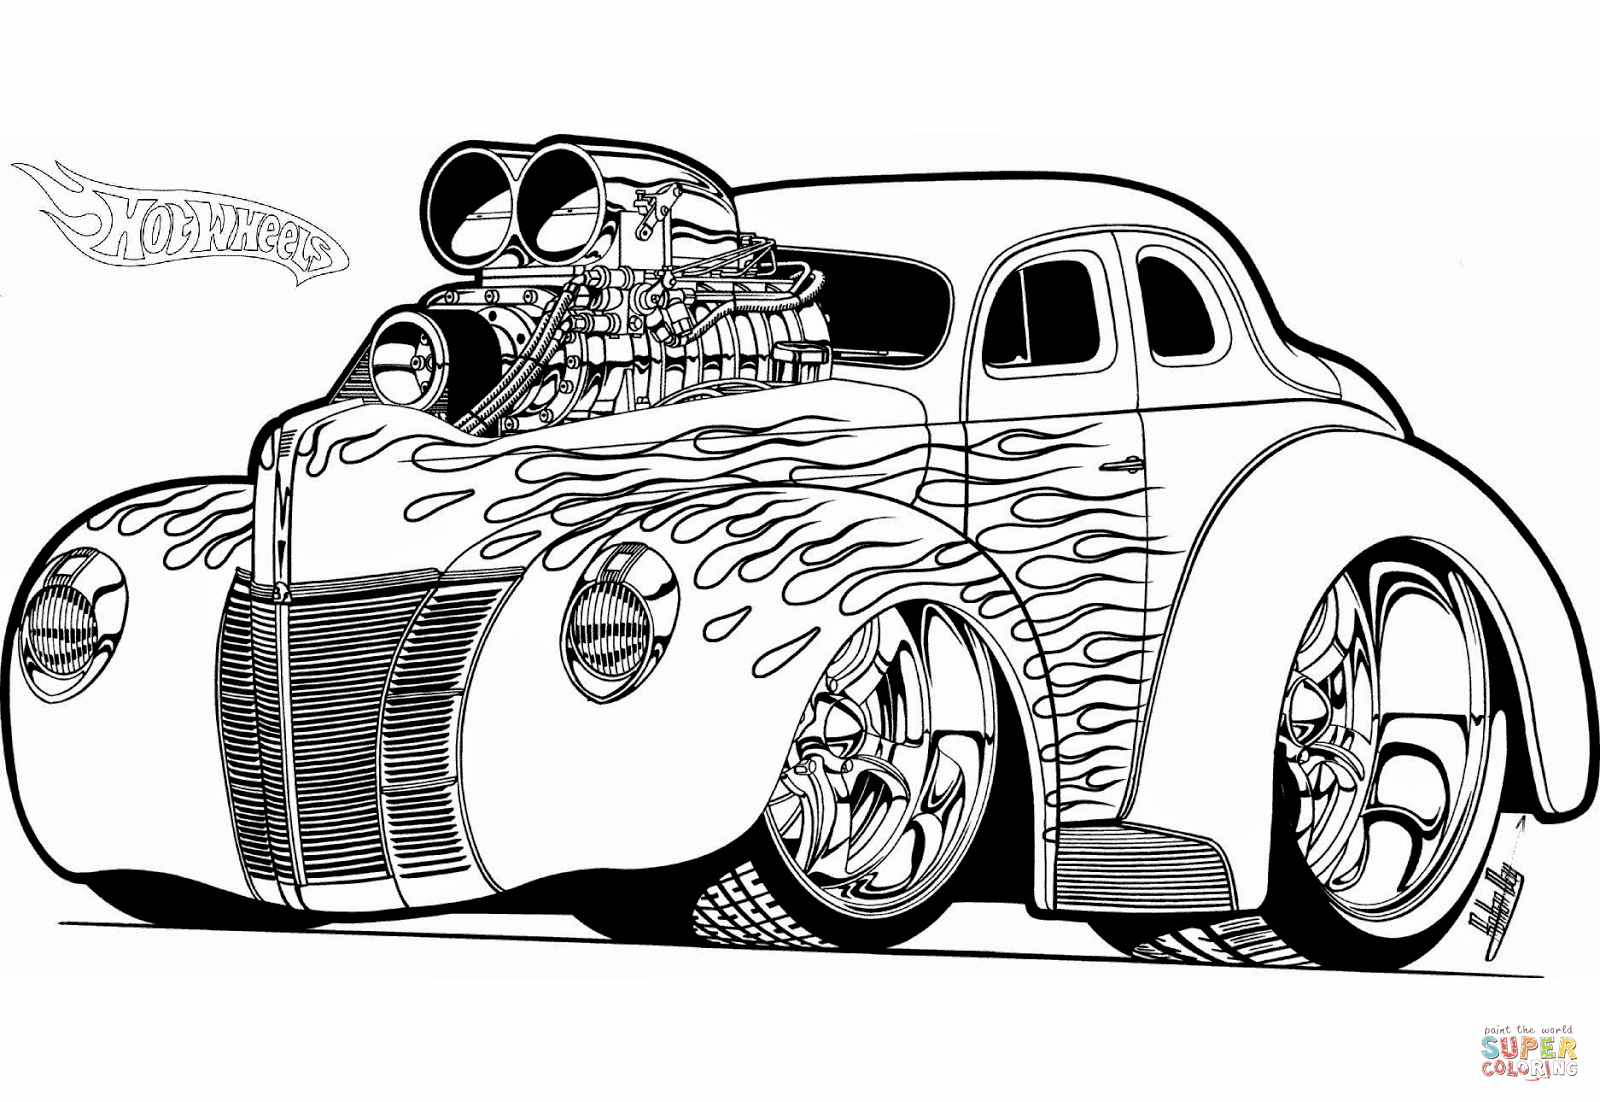 Hot Rod Coloring Pages to Print Download 19r - Free For Children